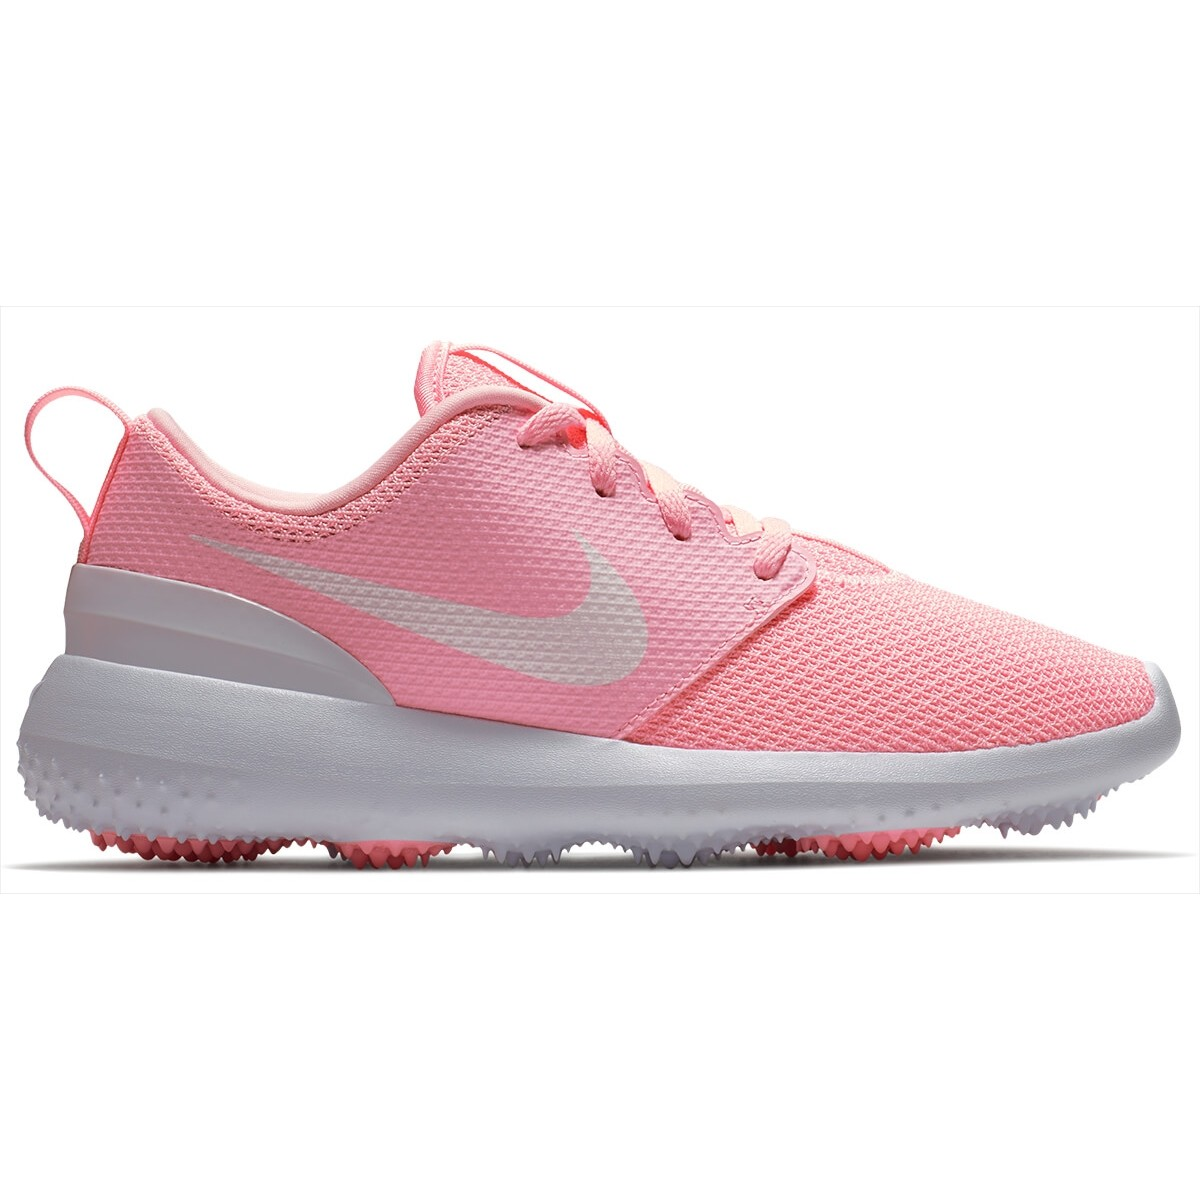 Nike Women's Roshe G Golf Shoe - Pink